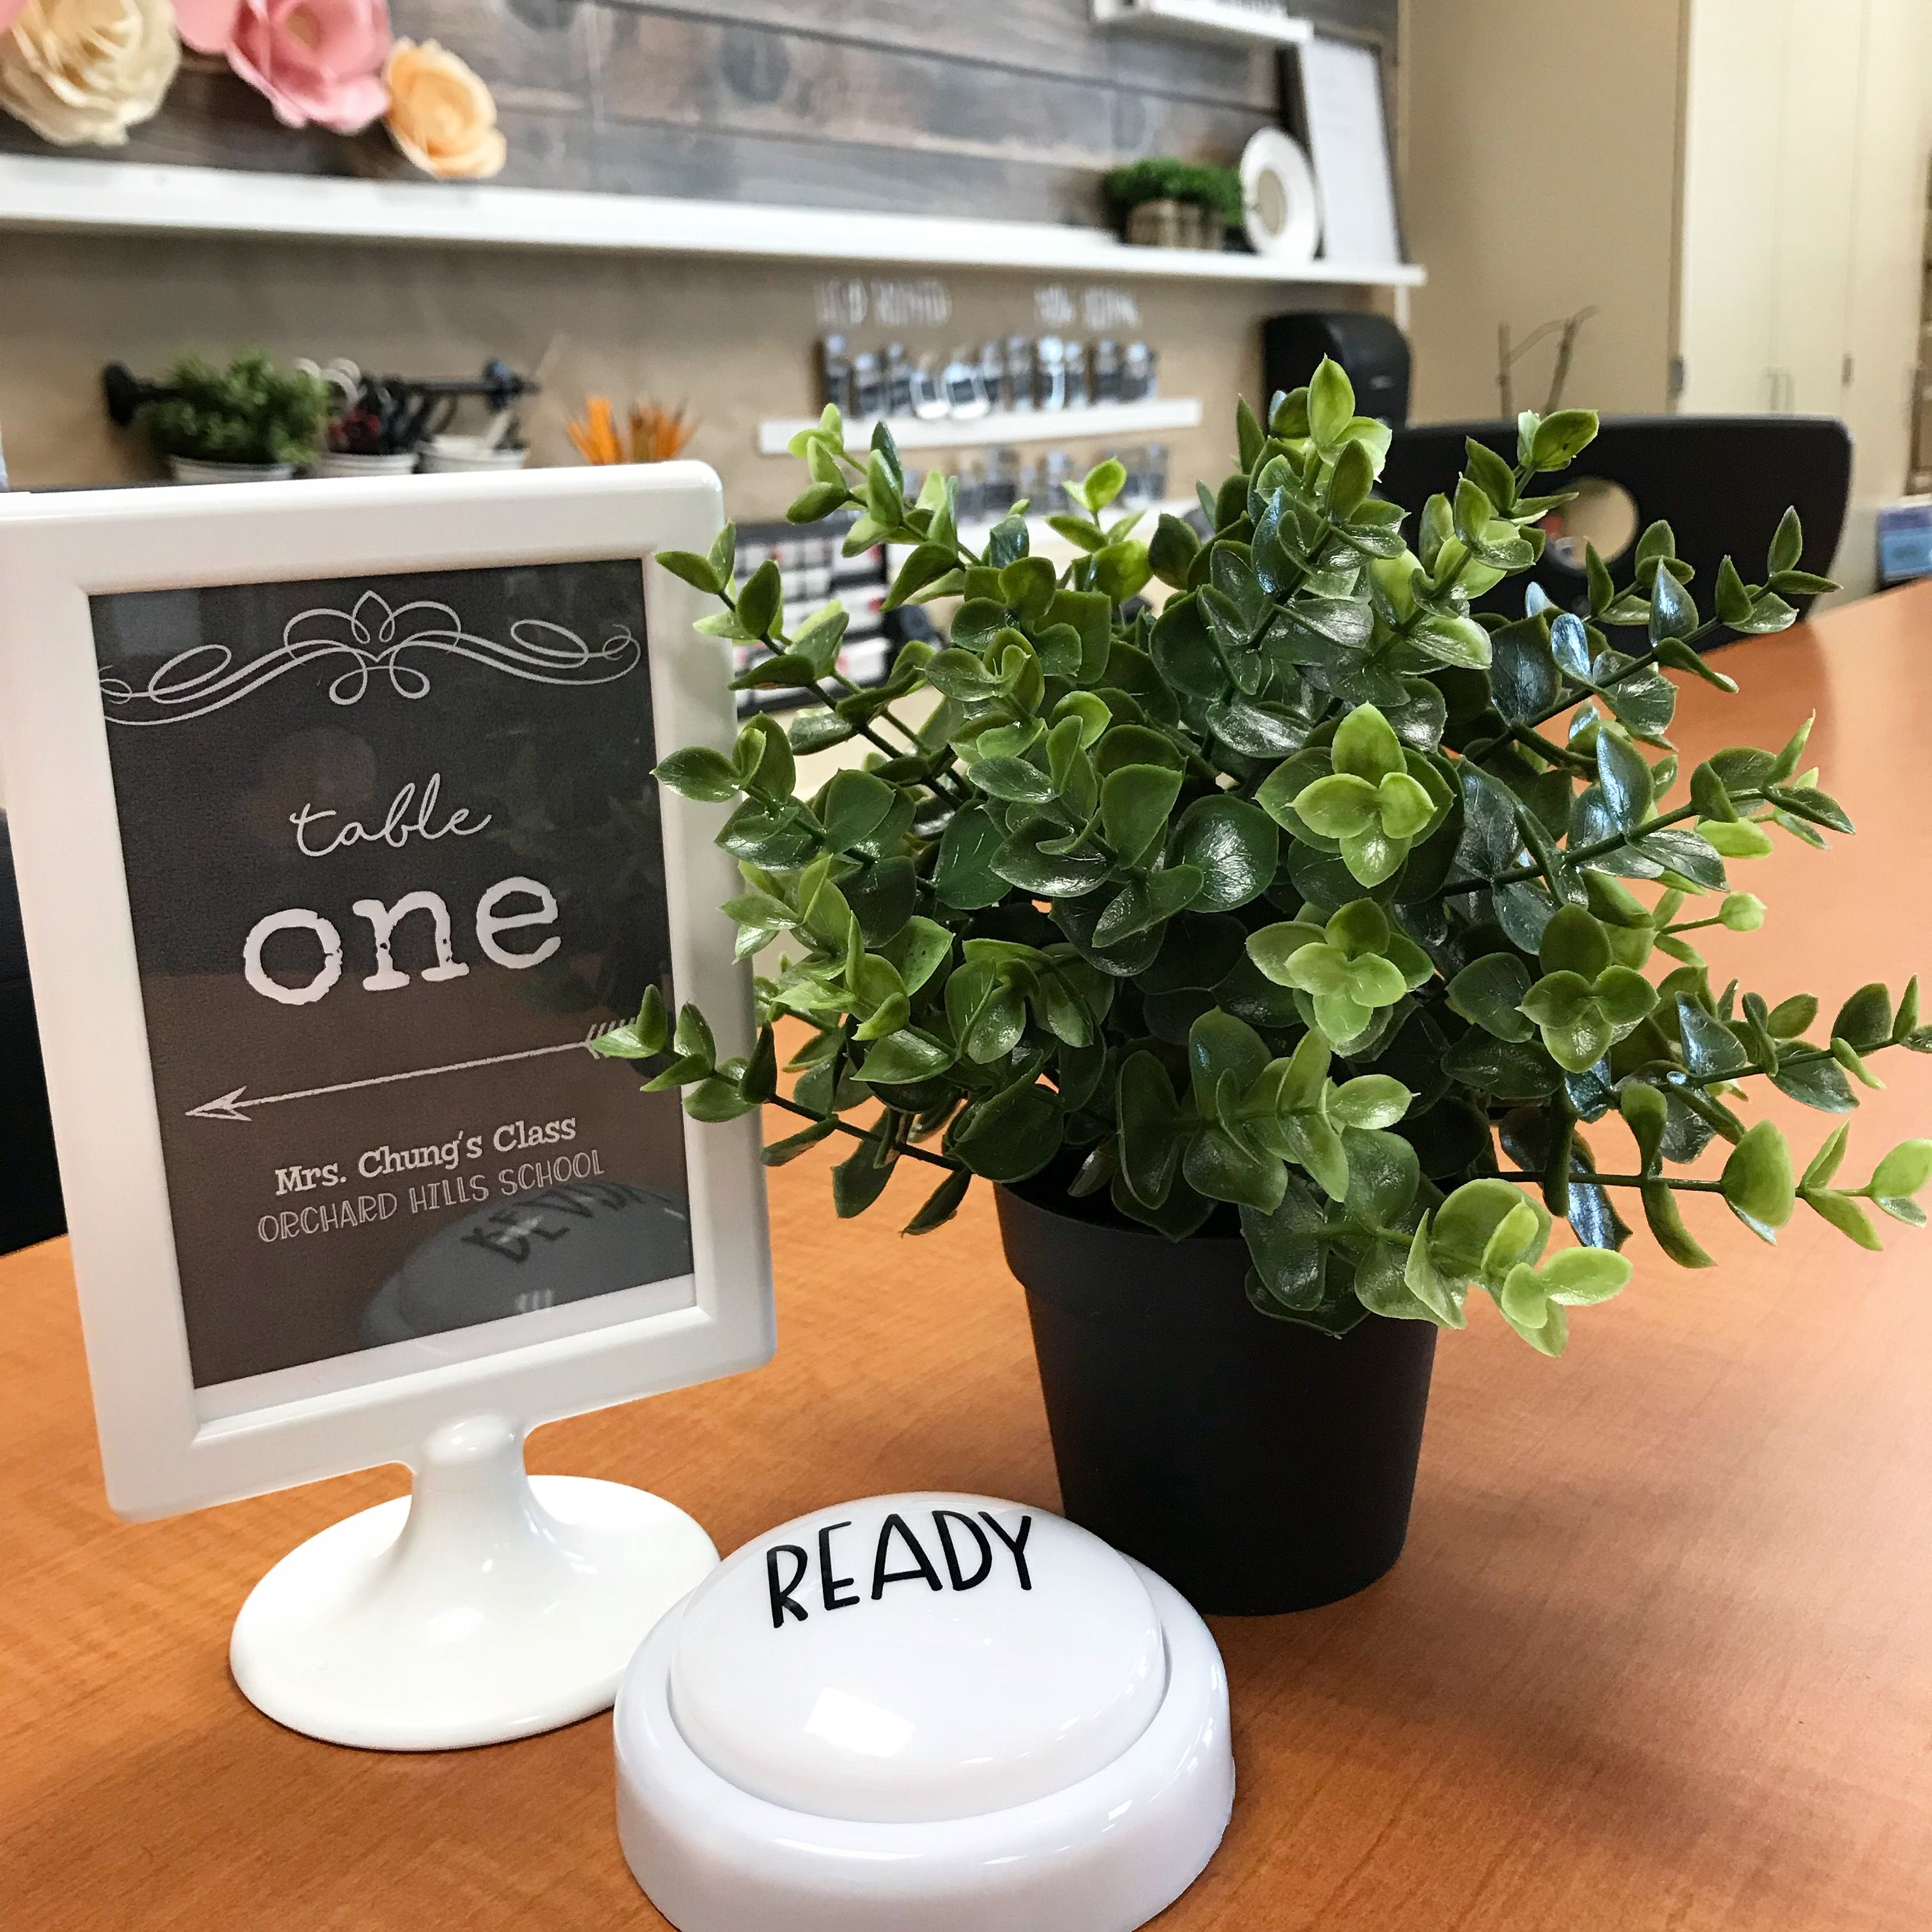 Real Weddings Study: Table Signs And Ready Lights For Quick Transitioning